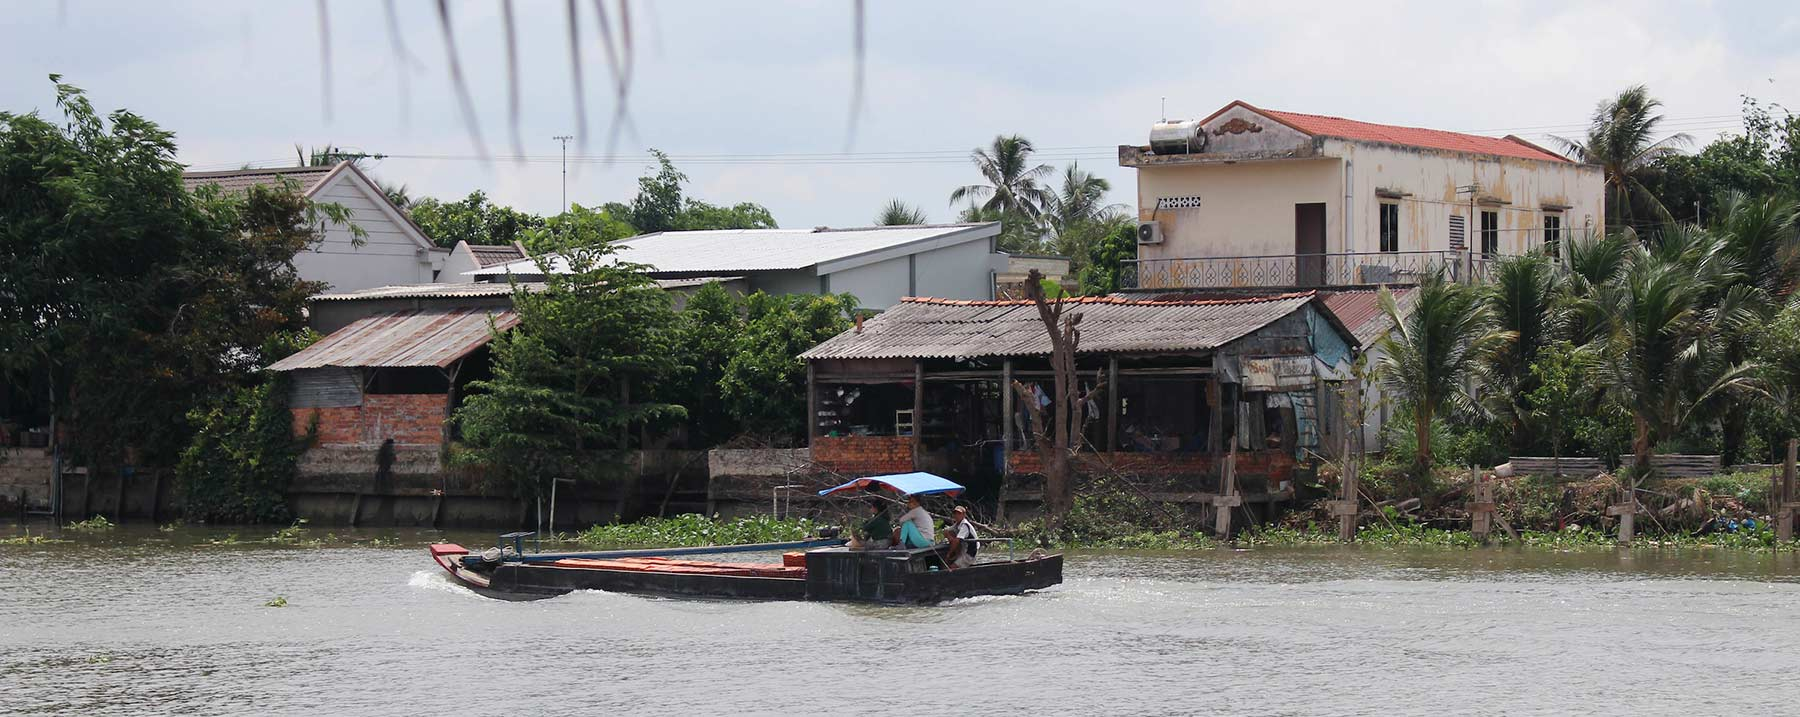 A boat is pictured on a waterway in Vietname.